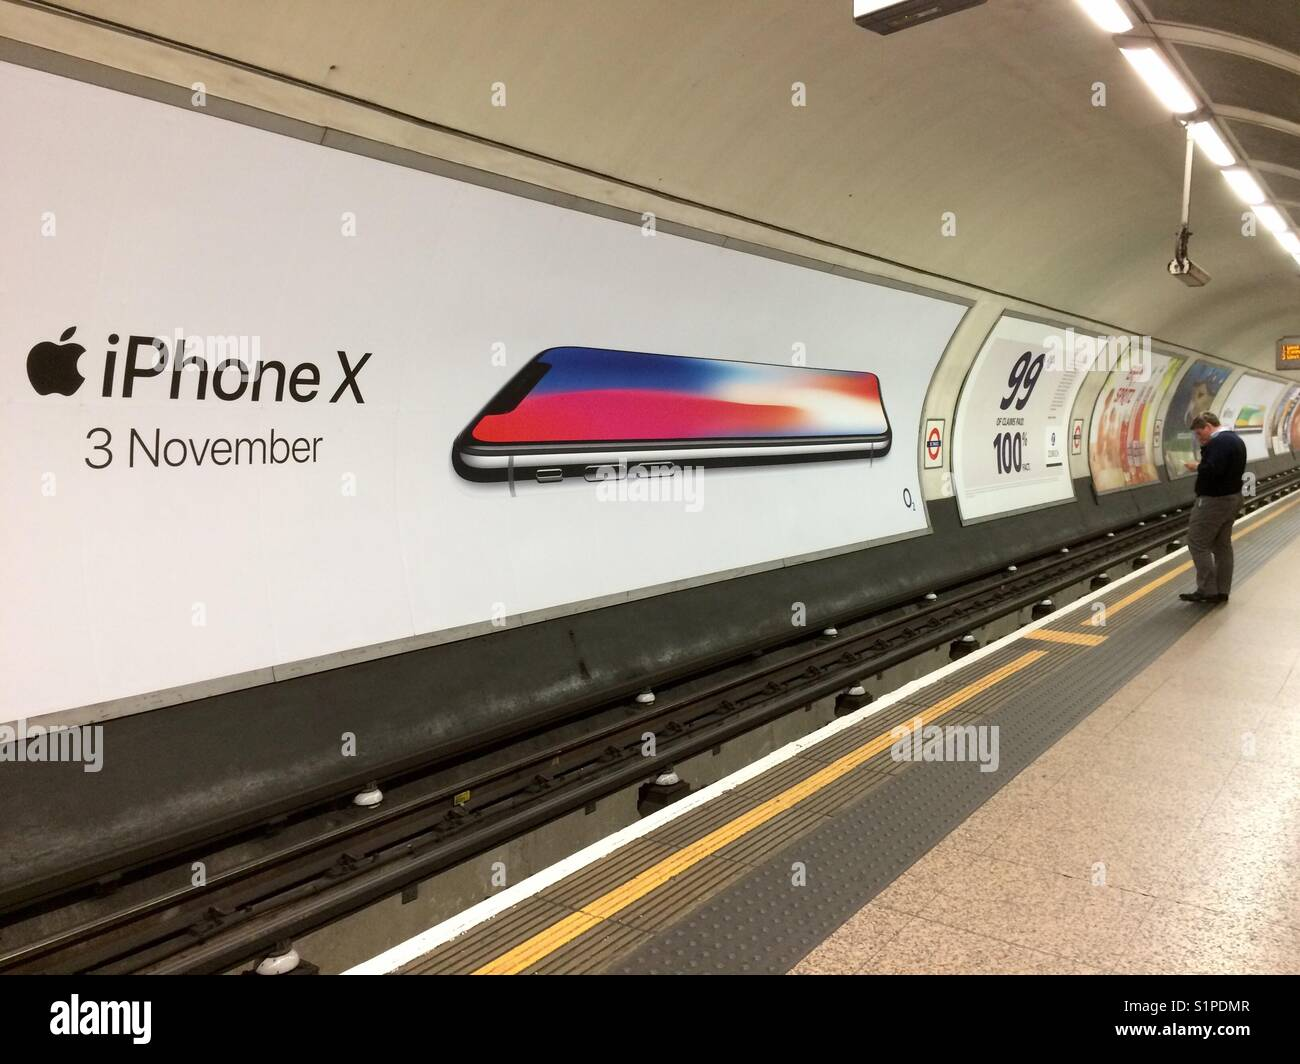 iPhone X advertisement poster on the London Underground ...